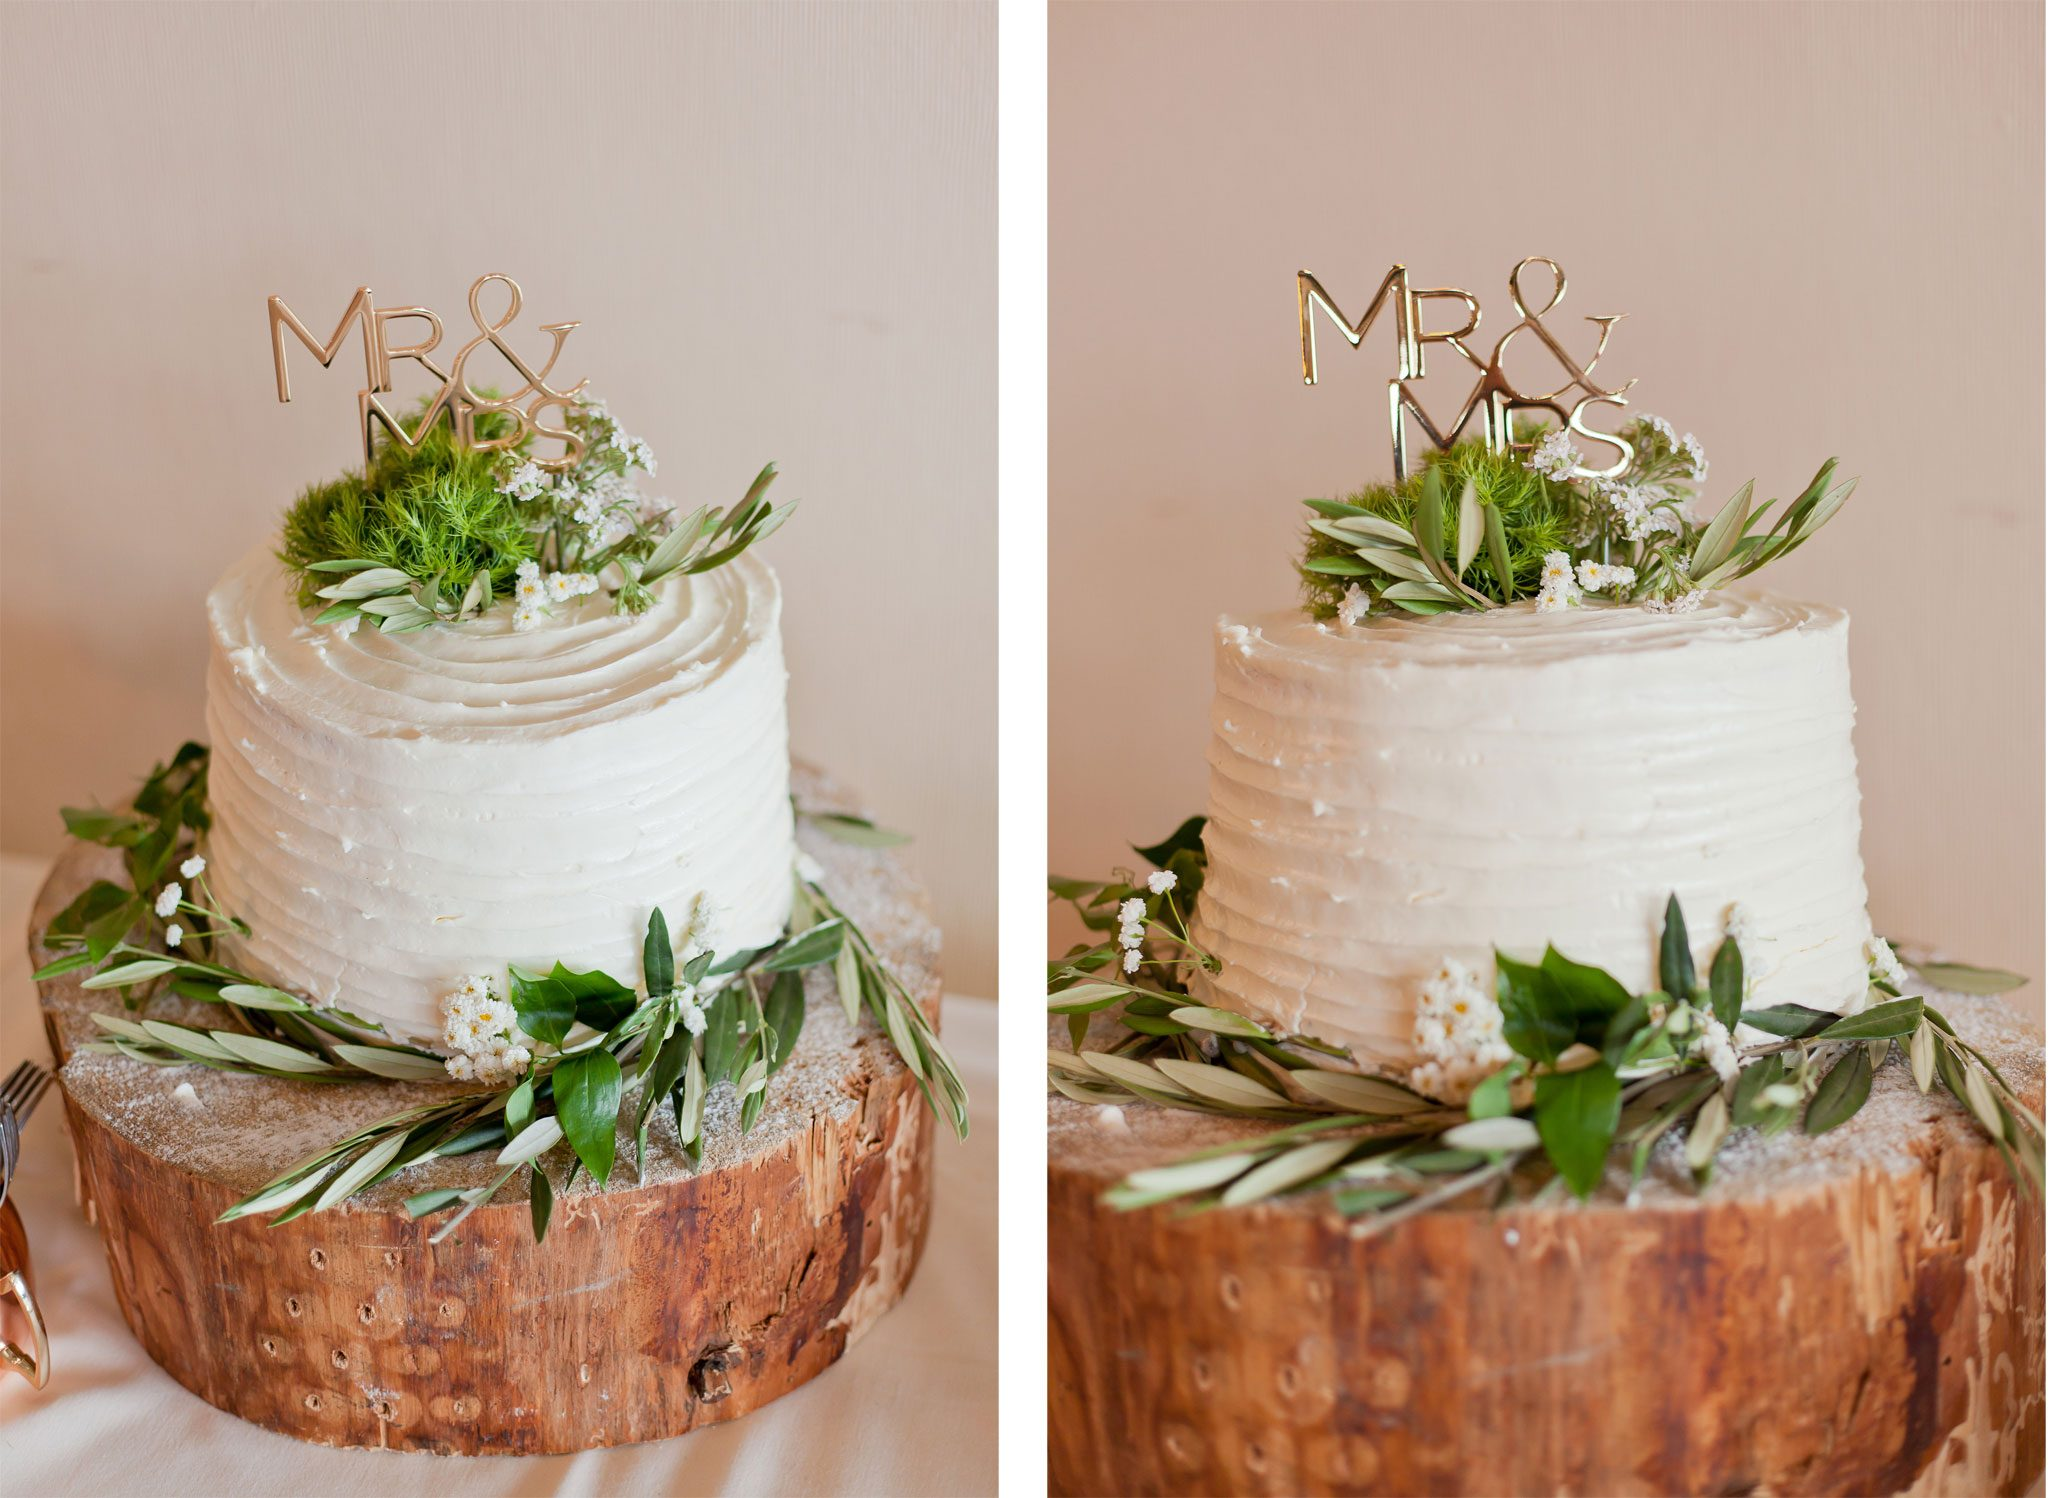 Simple & Natural Wedding Cake